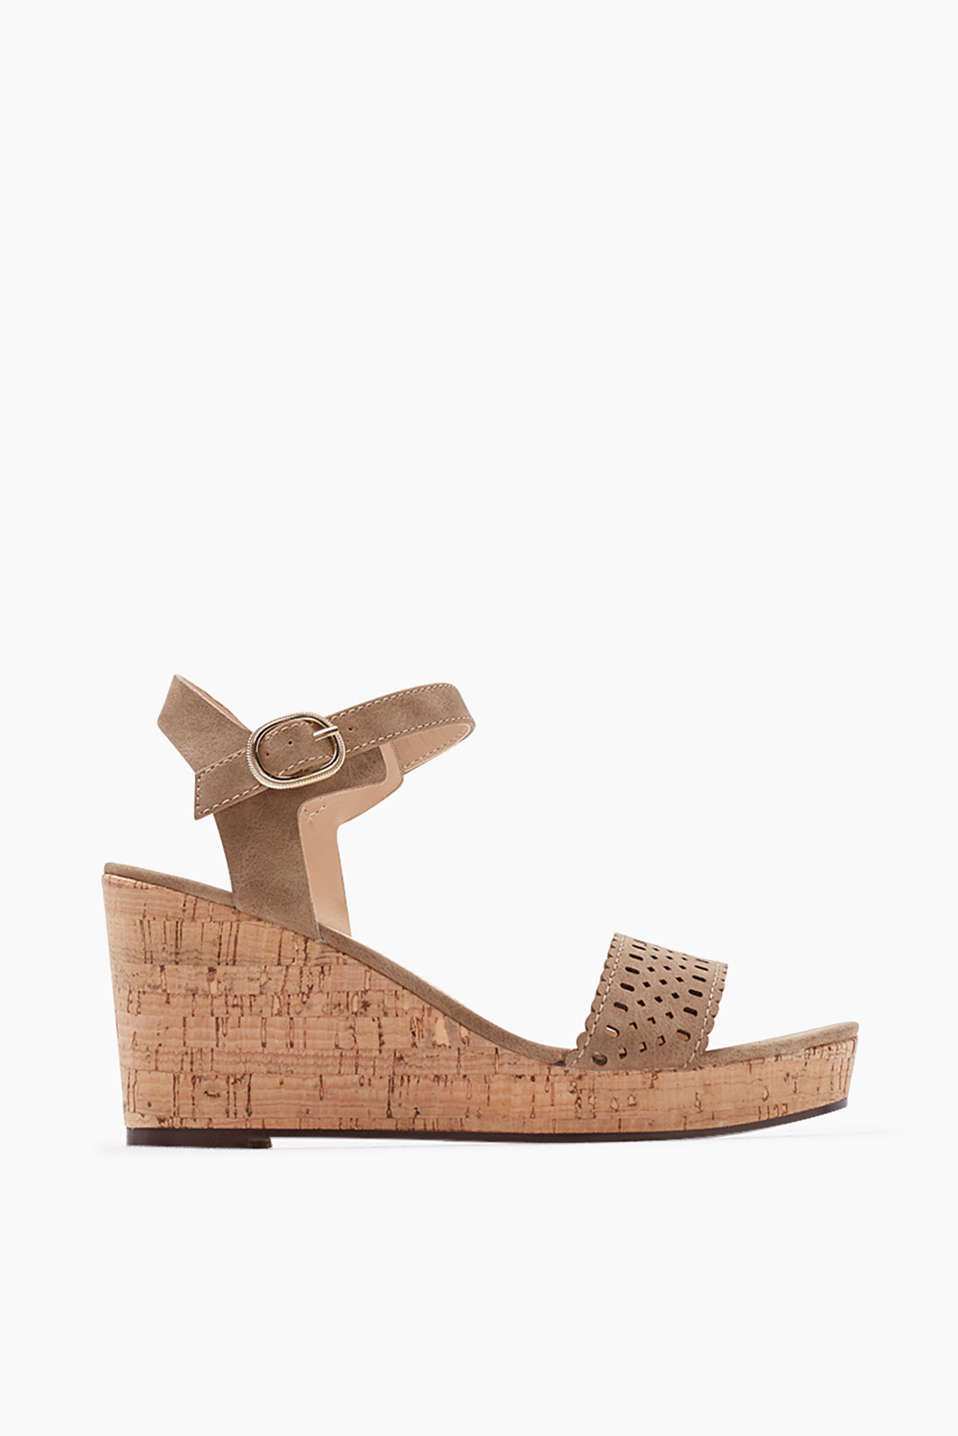 A modern classic: Faux suede sandal with ankle strap and cork heel